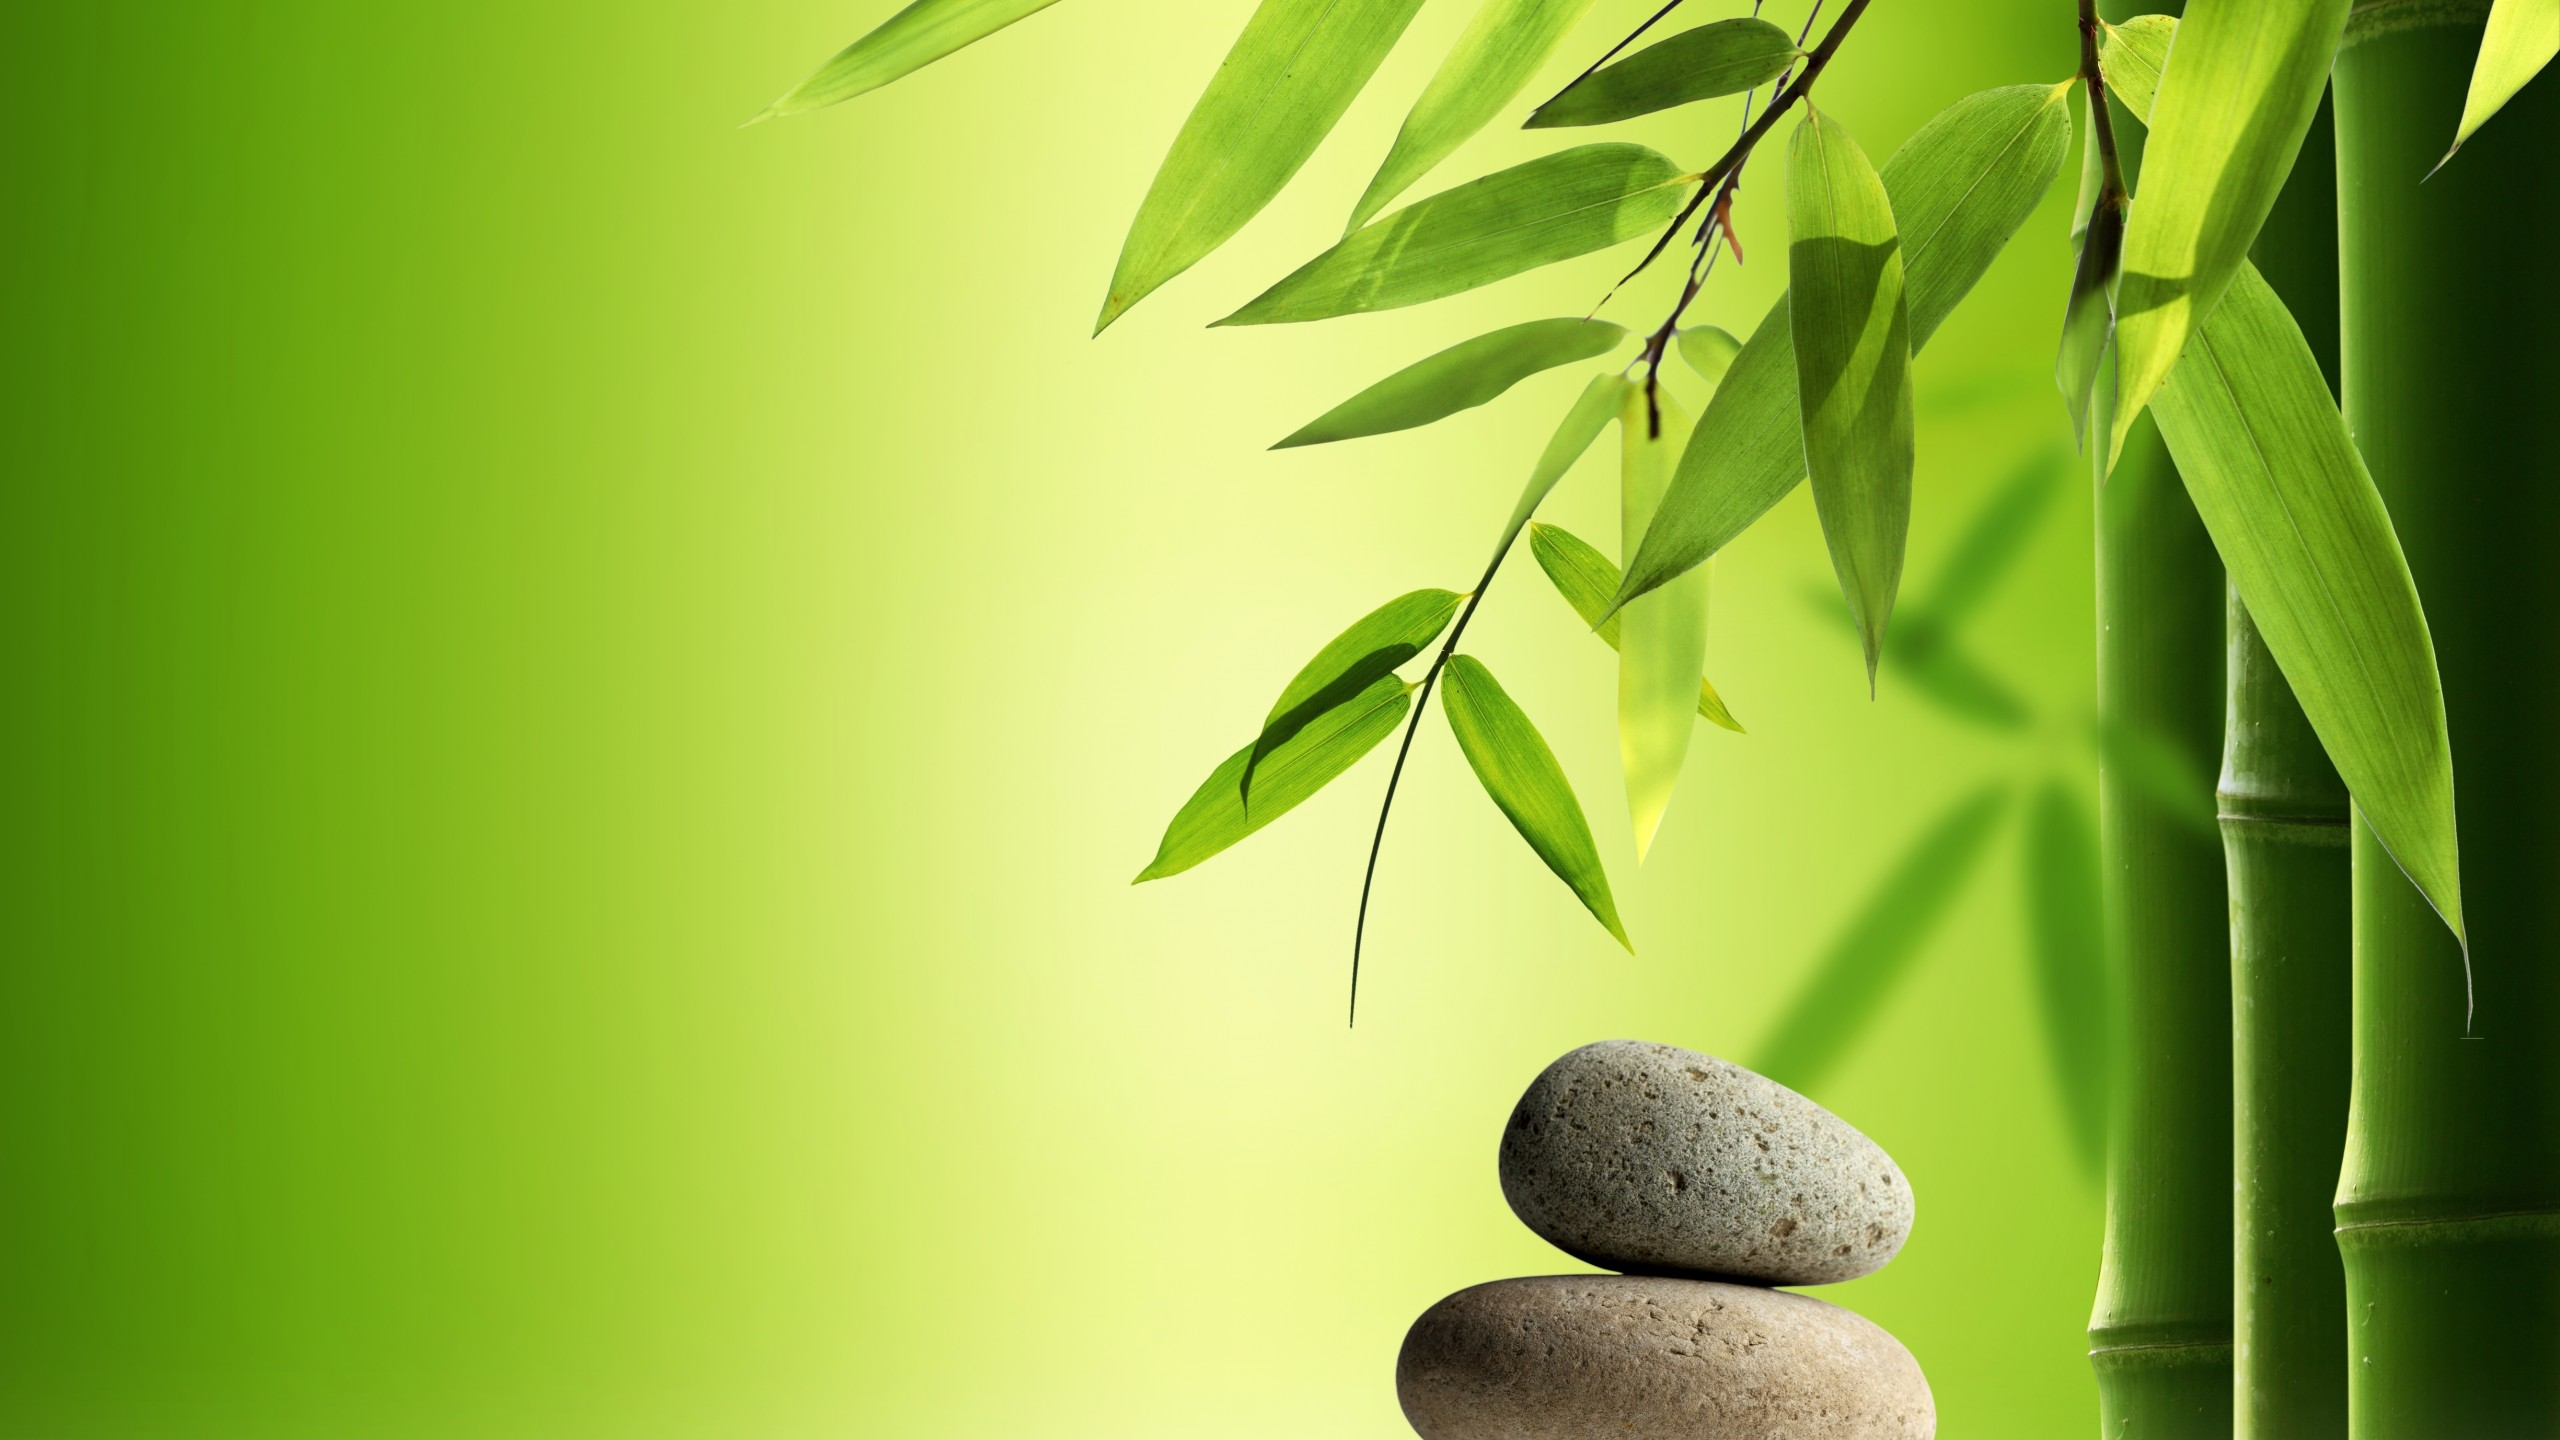 Spa Wallpaper zen stones bamboo water 2560x1440   HD Wallpapers 2560x1440